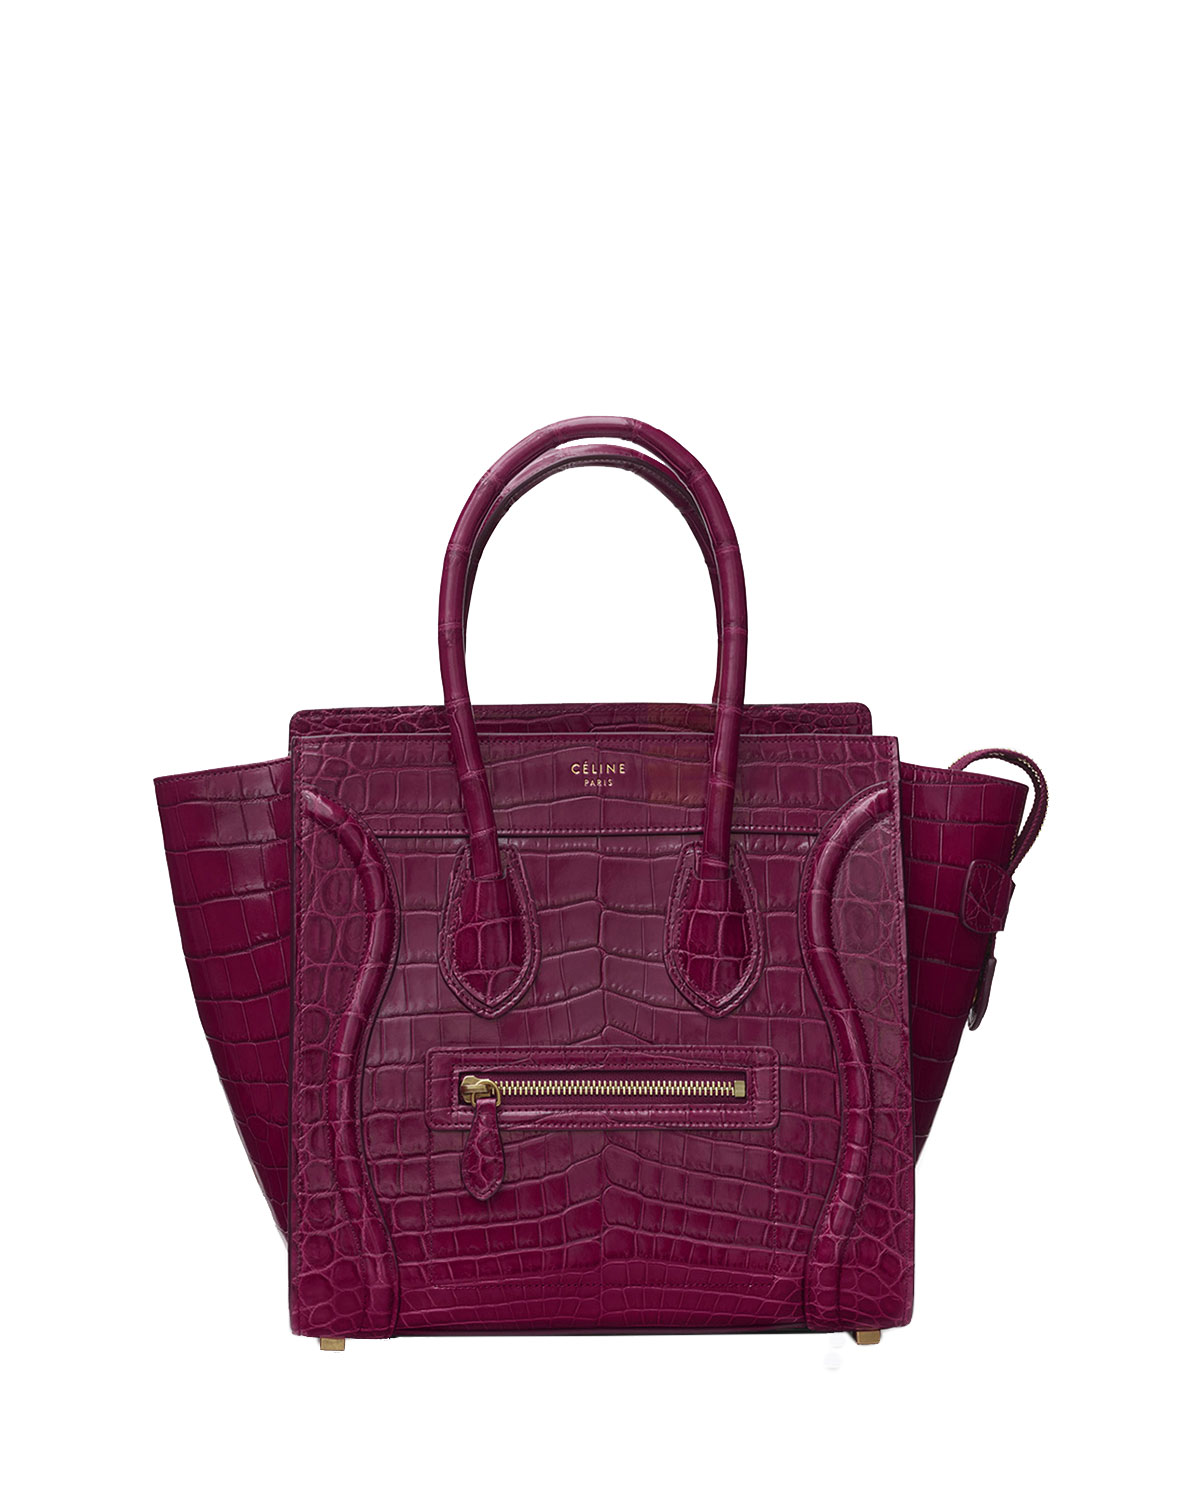 40984d4af708 Celine Luggage Micro Alligator Tote Bag